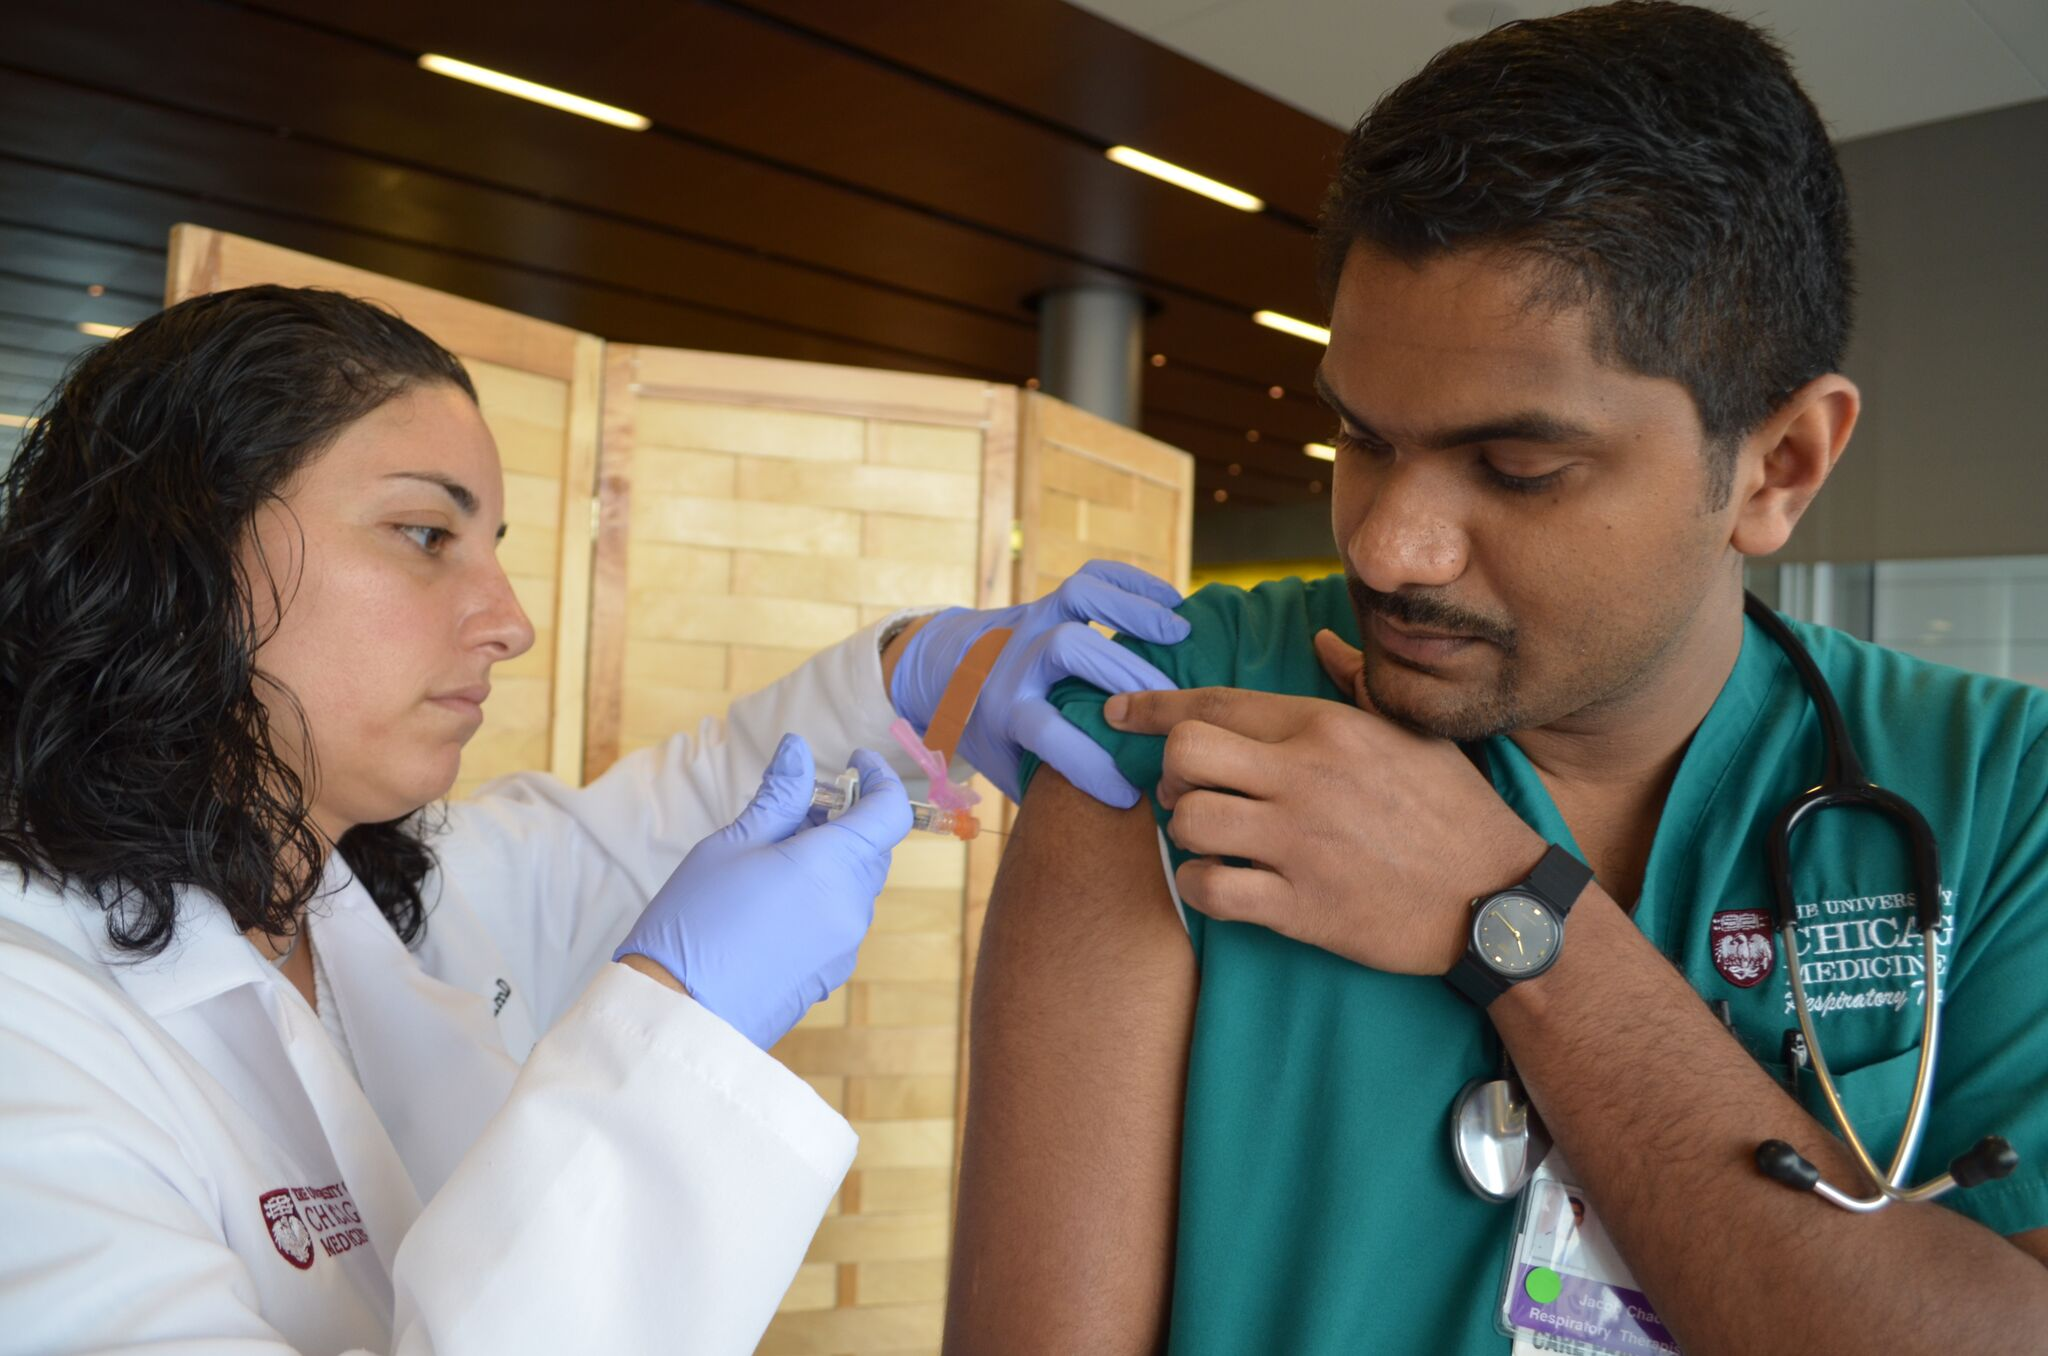 Clinic to study longterm effectiveness of MMR vaccine